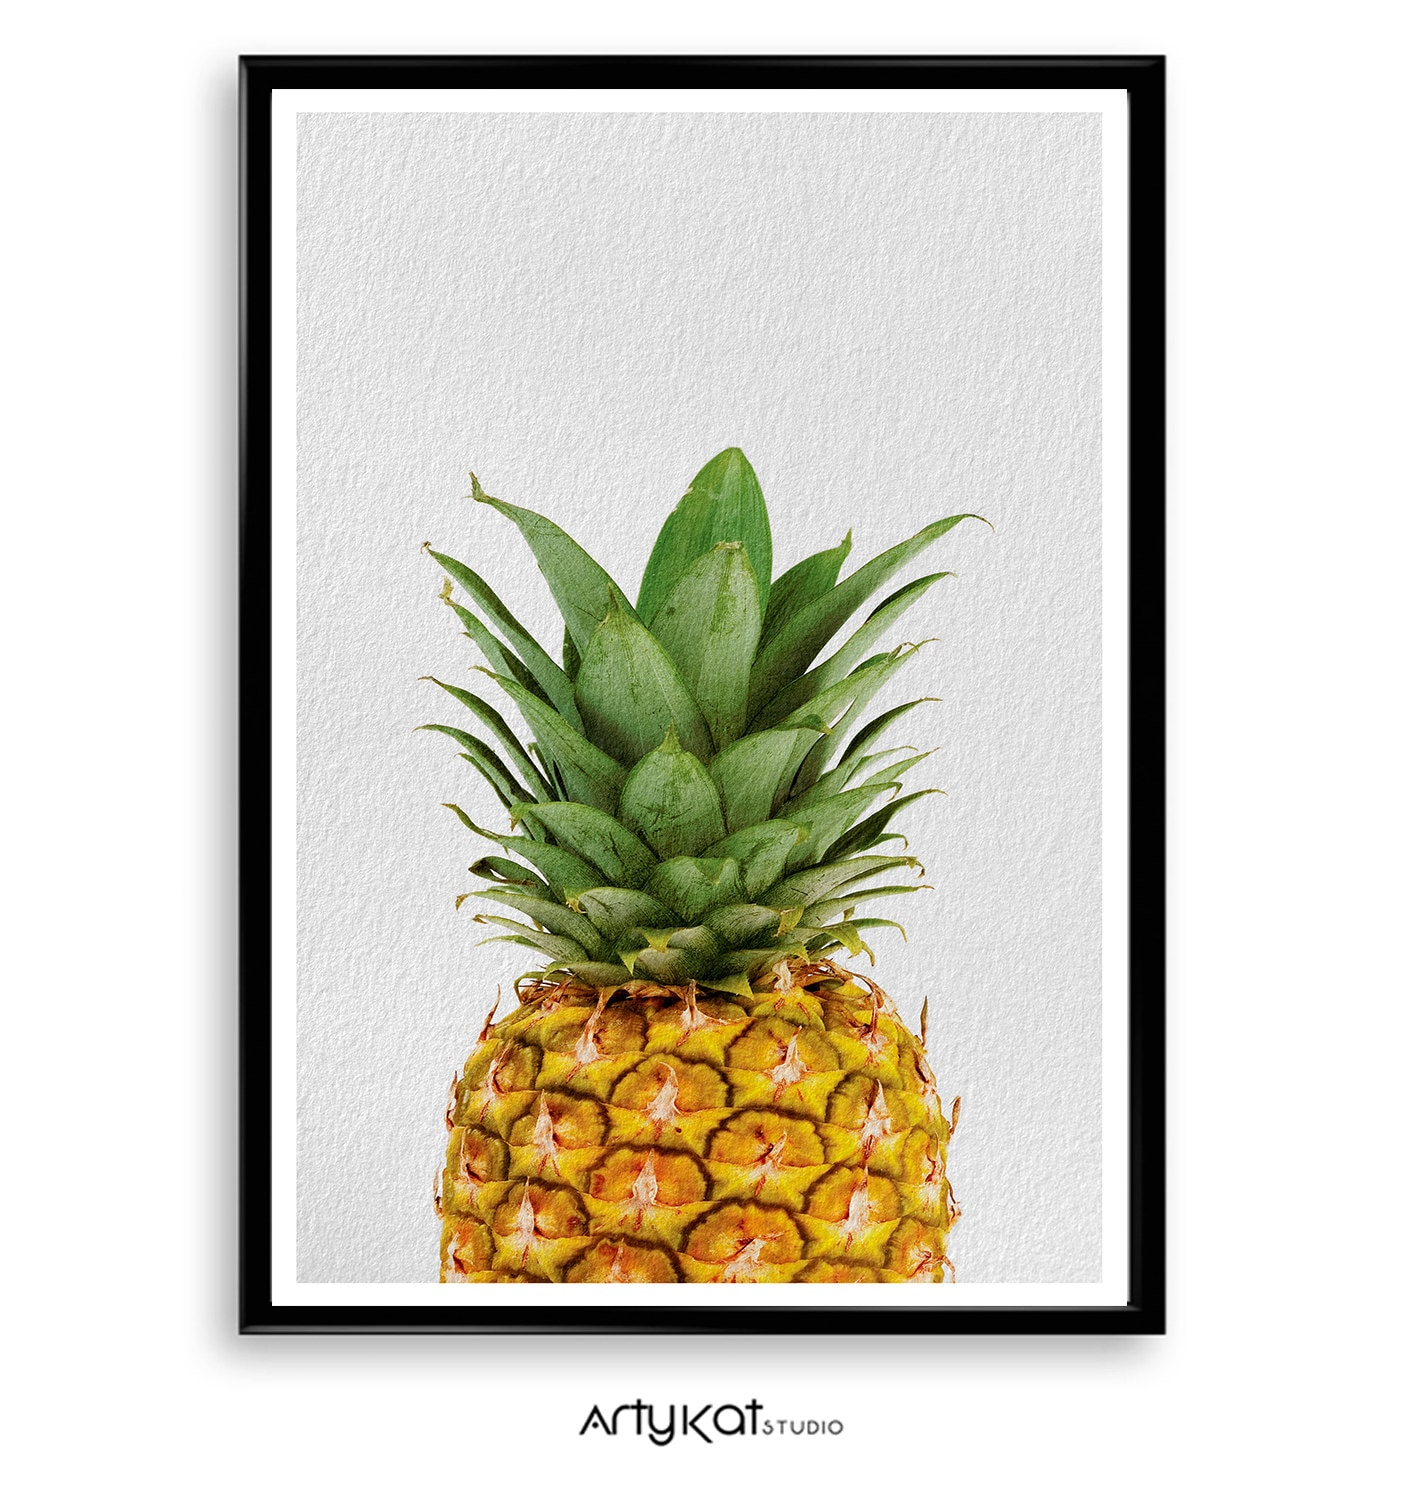 Pineapple Pineapple Print Pineapple Photography Pineapple